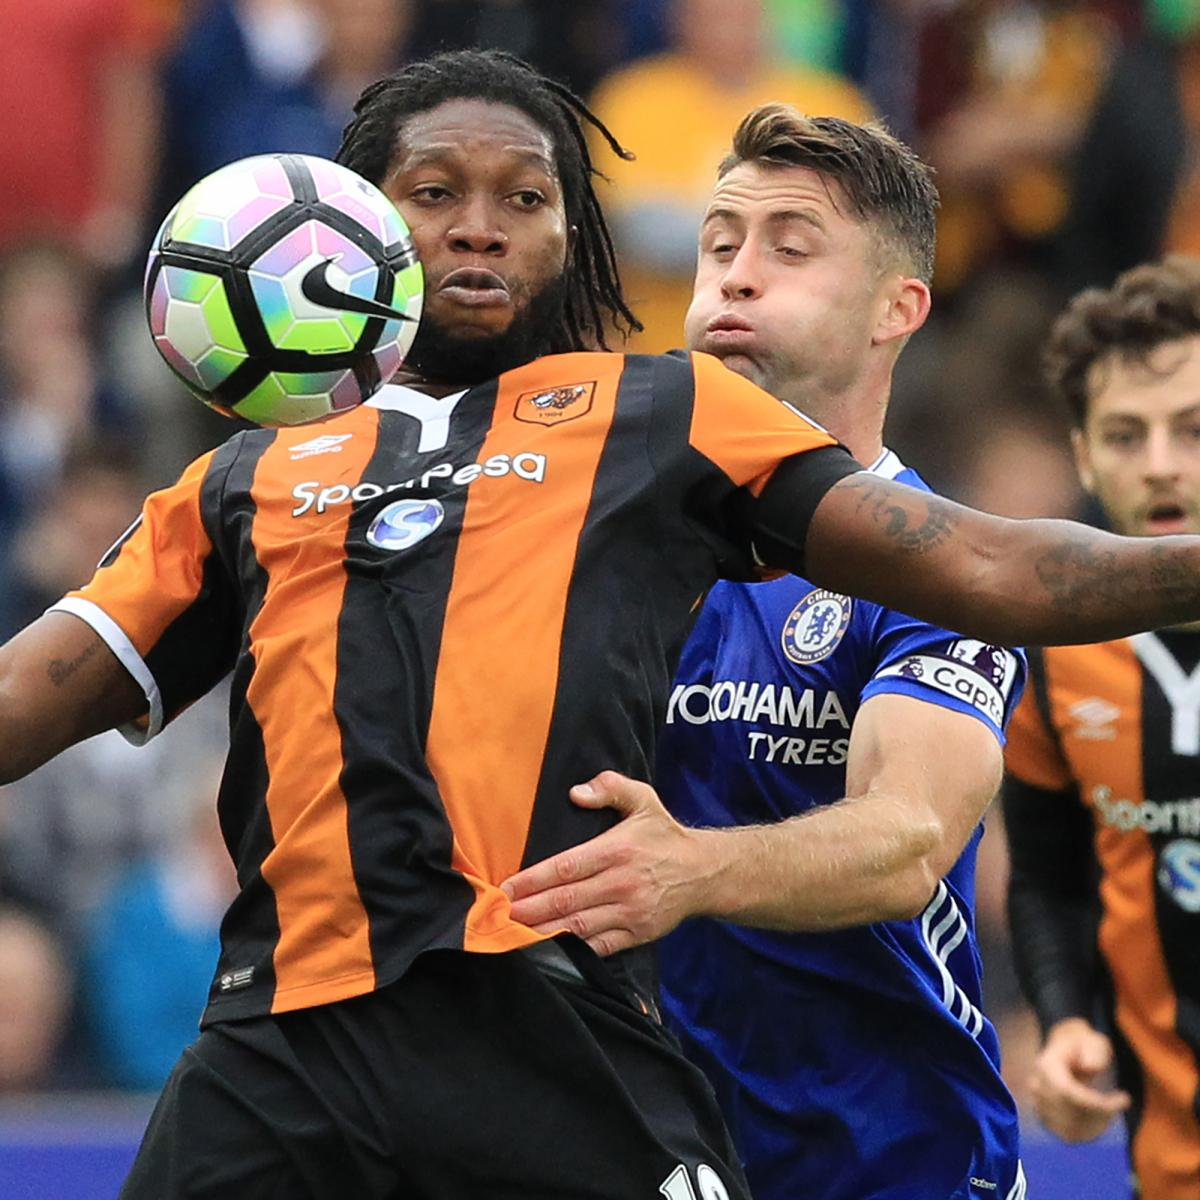 Chelsea Vs Tottenham Score Reaction From 2016 Premier: Hull City Vs. Chelsea: Score And Reaction From 2016